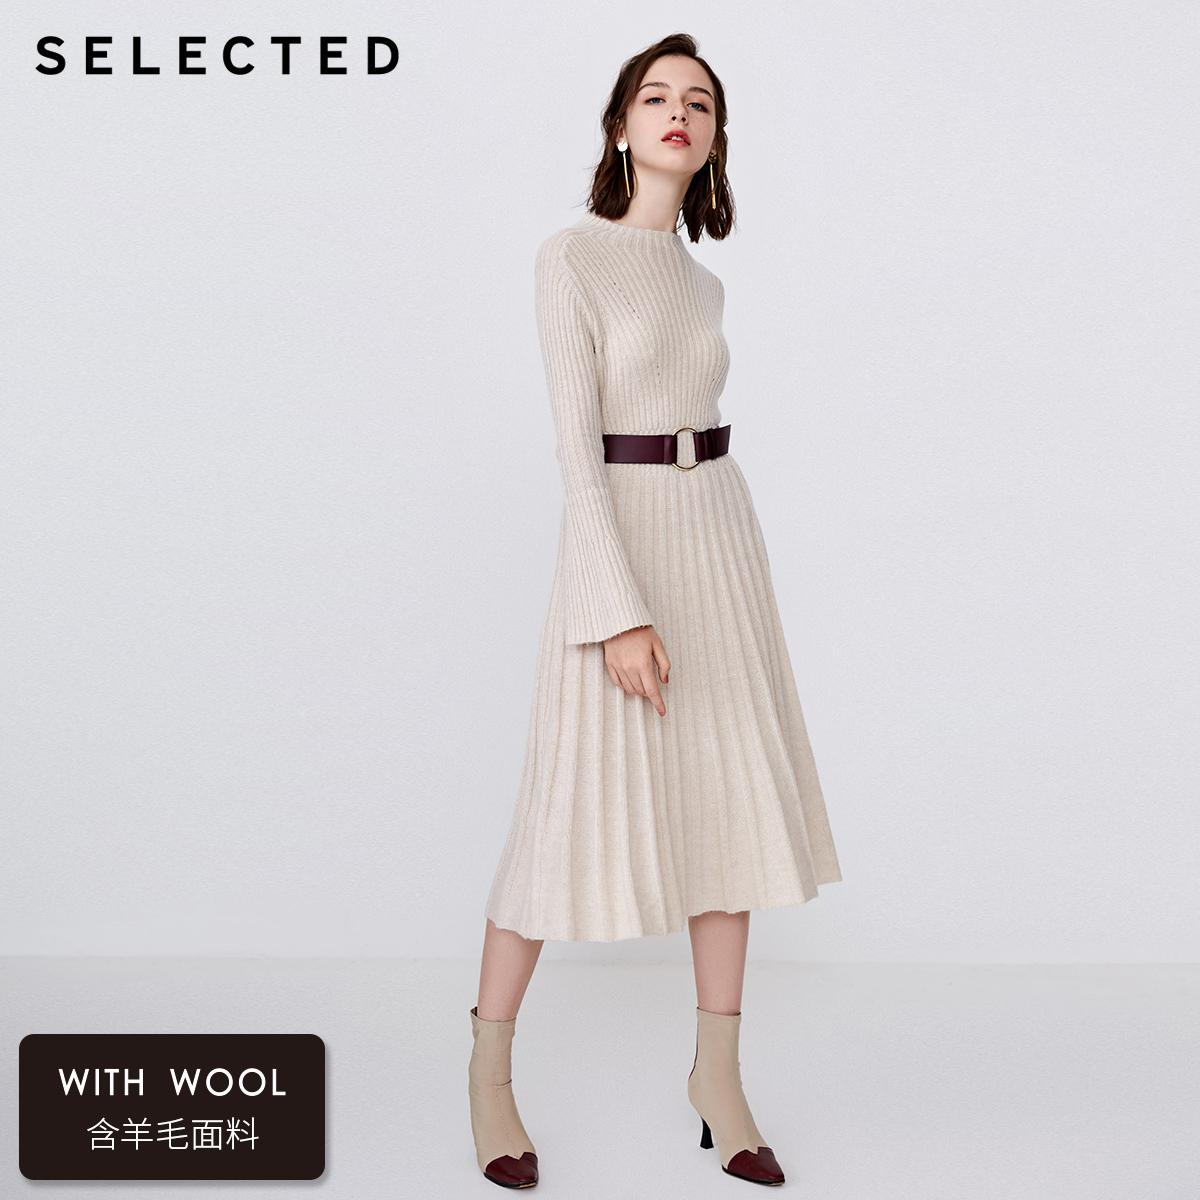 59aed1263307 SELECTED Mid Length Dress S